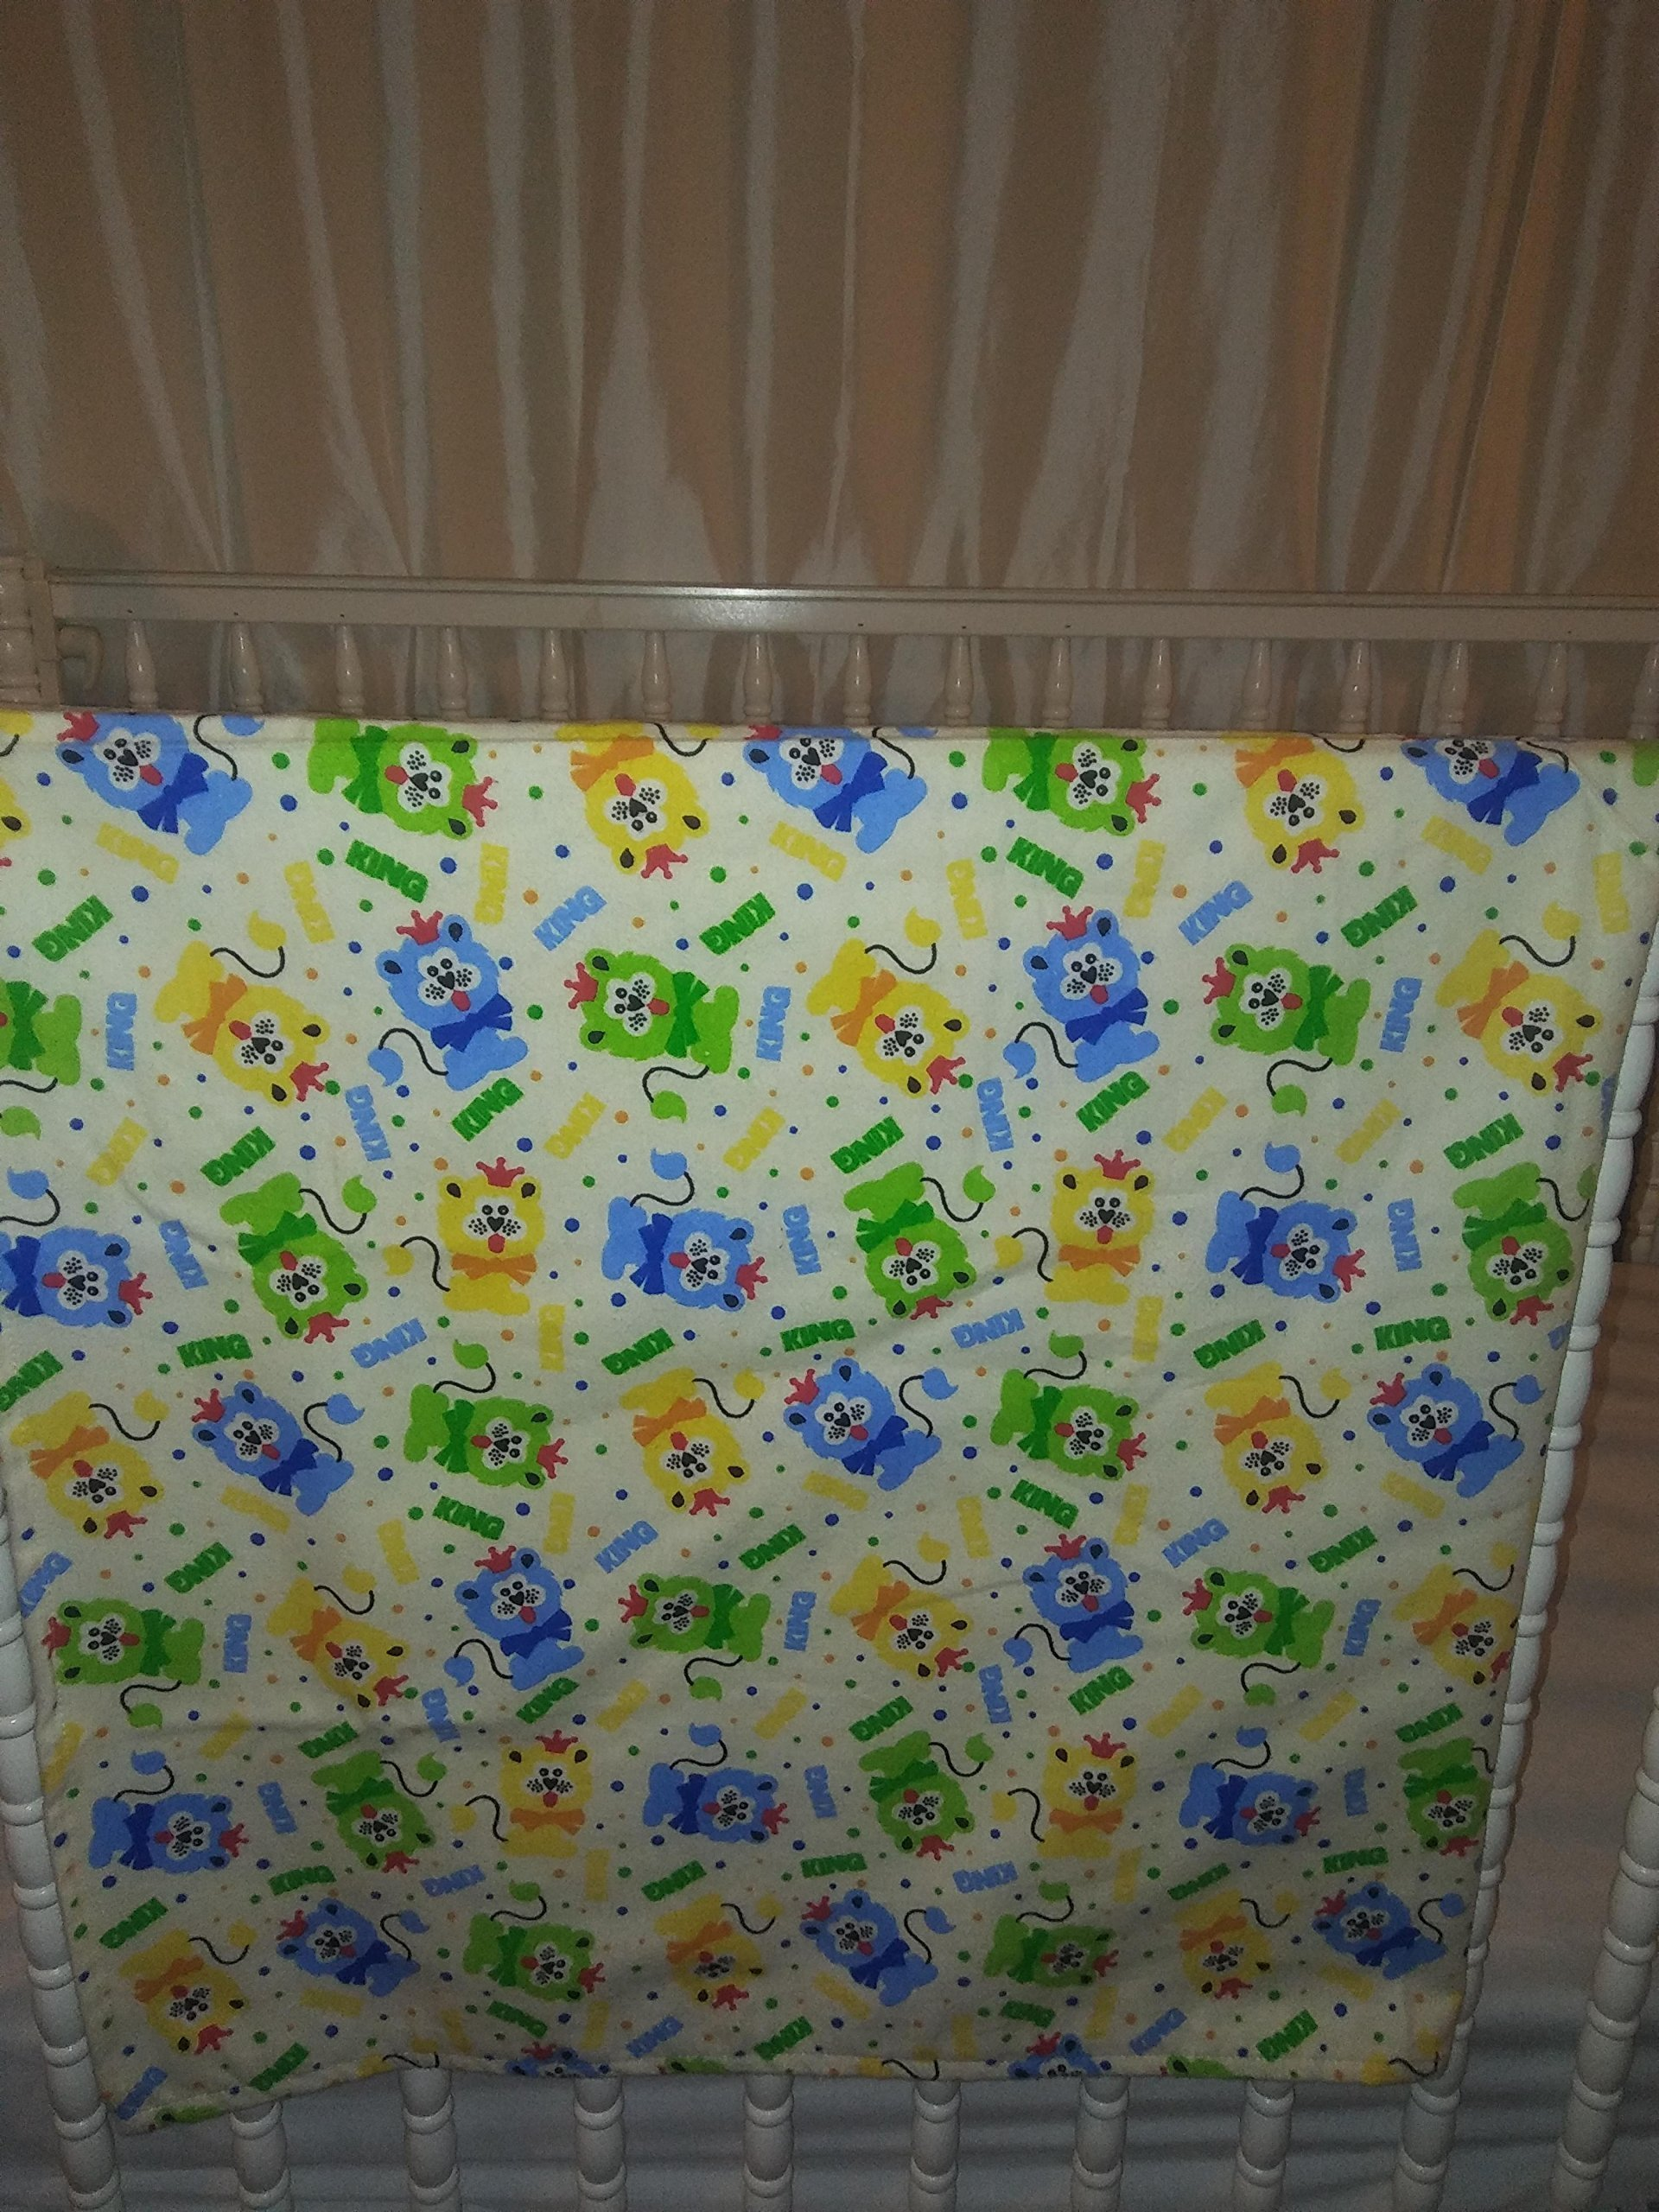 Large Cotton Flannel Receiving Baby Blanket Swaddle, flat top crib sheet 44''x 44'' Fabric cute lions, Also for dog or pet blanket